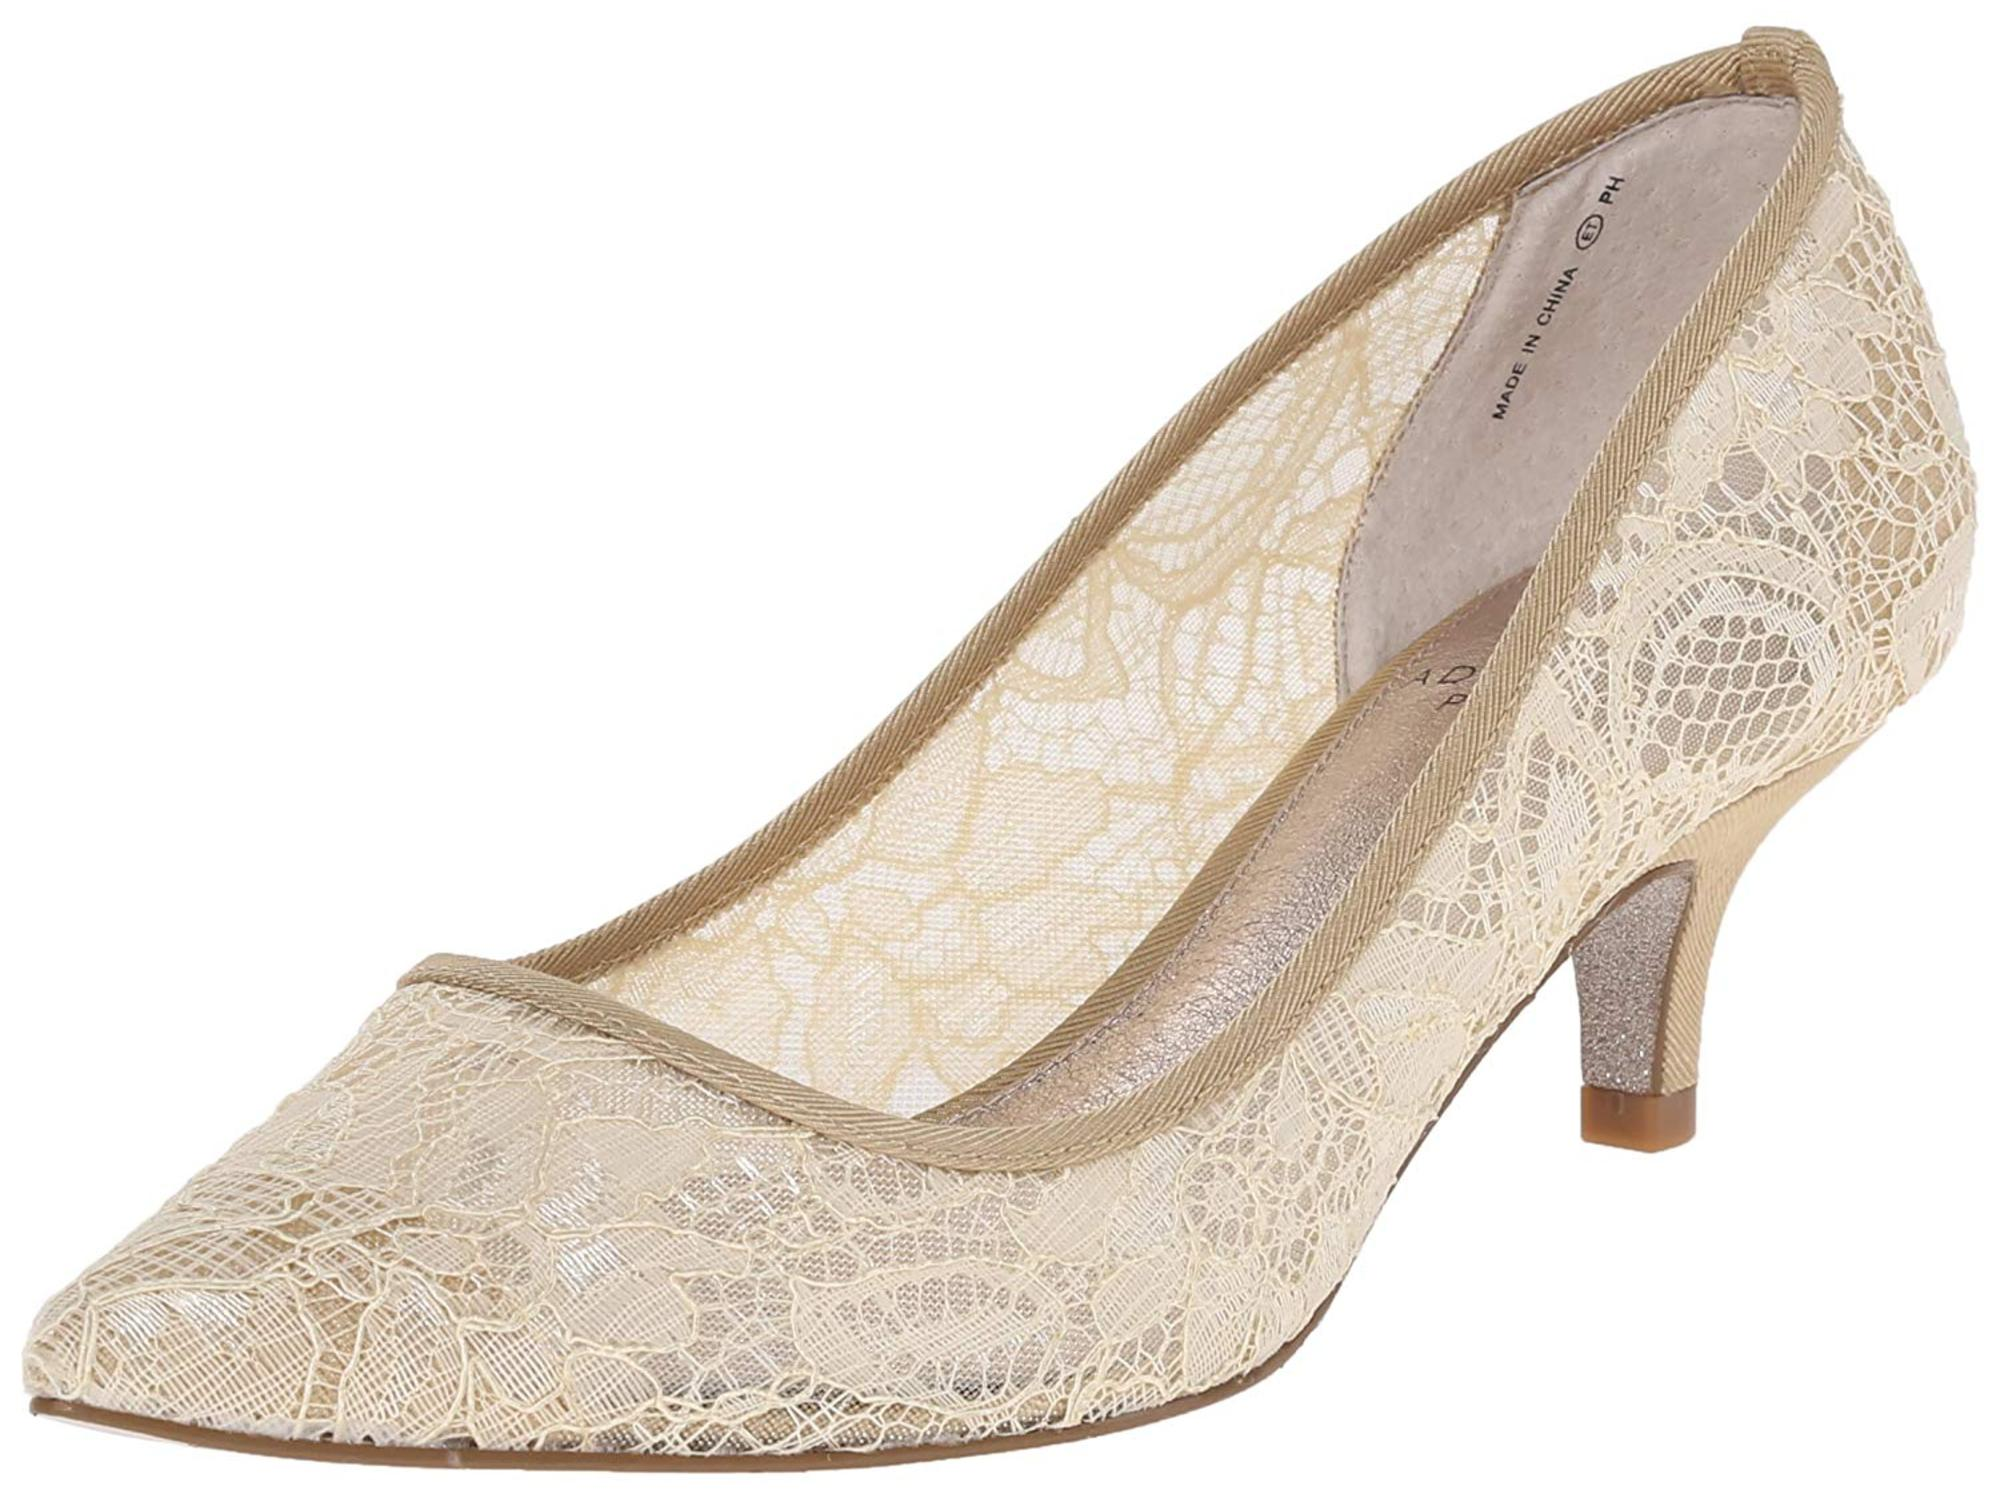 8d07c20192f58 Adrianna Papell Womens Lois Lace Pointed Toe Classic Pumps